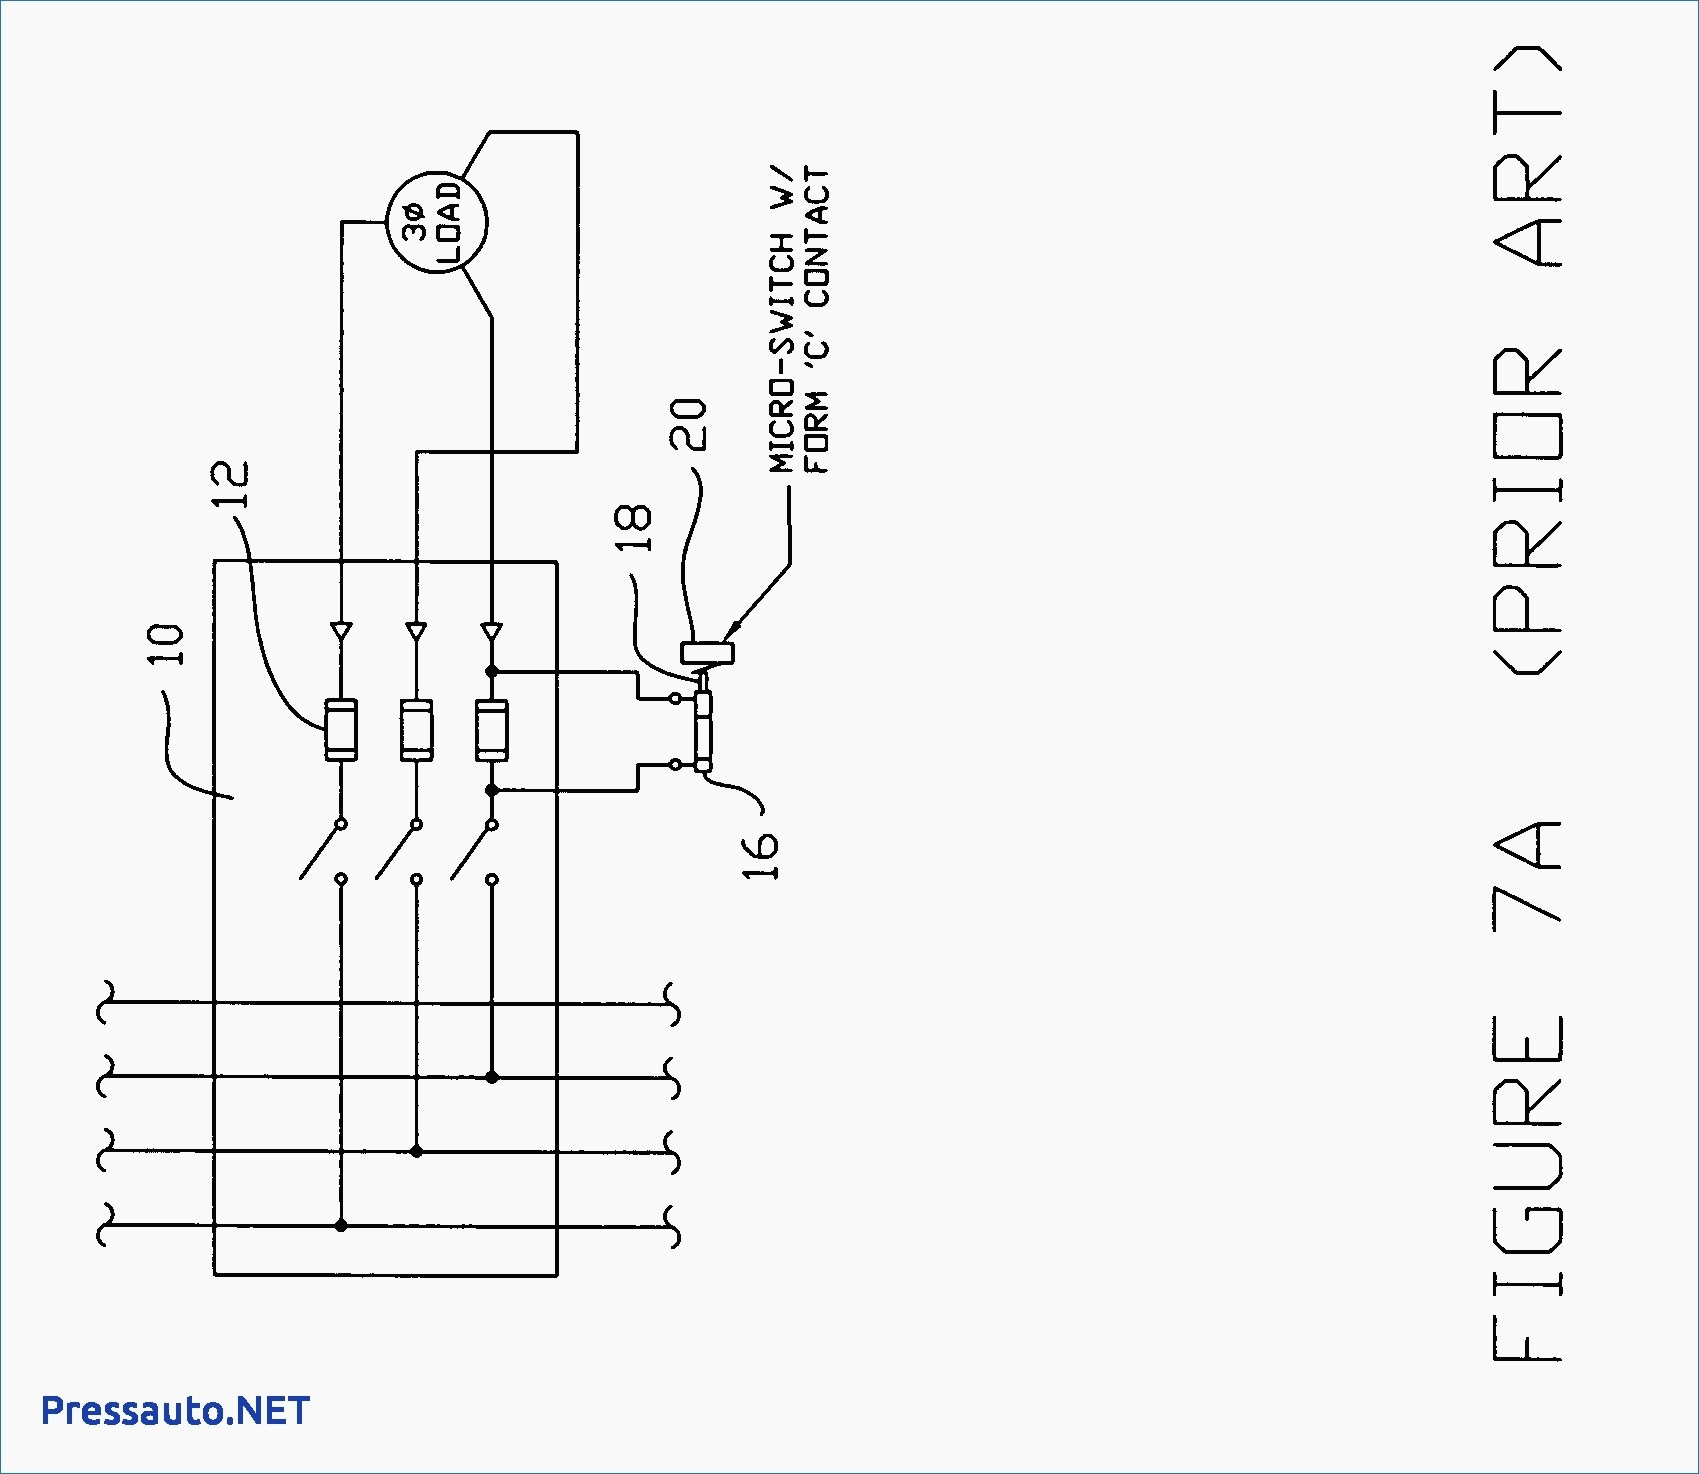 shunt trip breaker wiring diagram on wiring diagram shunt trip